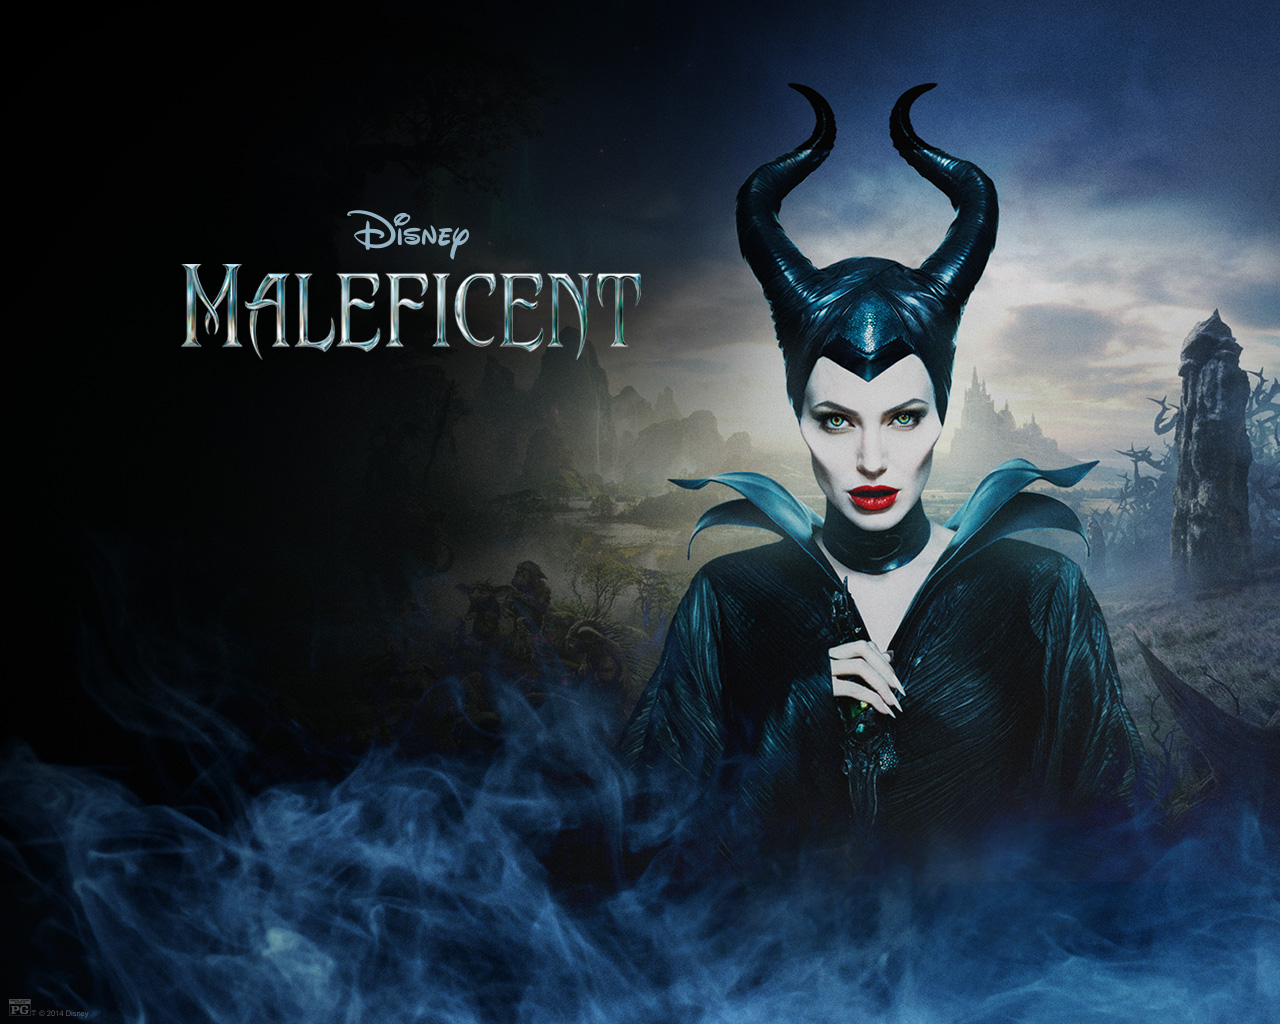 Maleficent Movie Wallpapers Wallpapers App